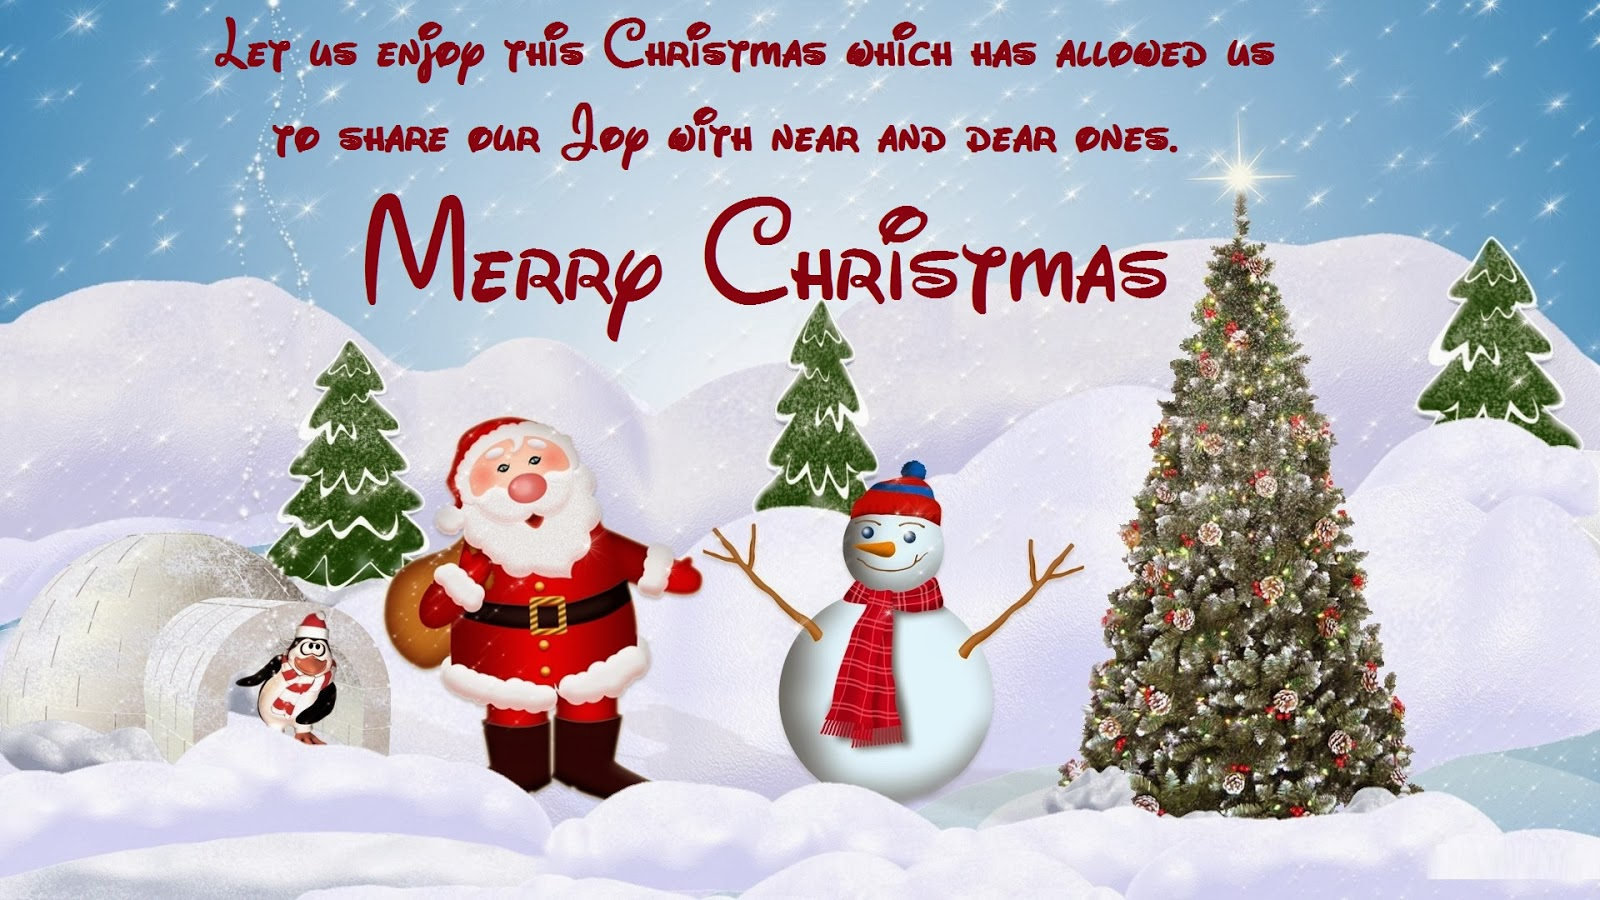 Happy Christmas Day Sms/Msg 2017 - Christmas Day Whises Wallpapers